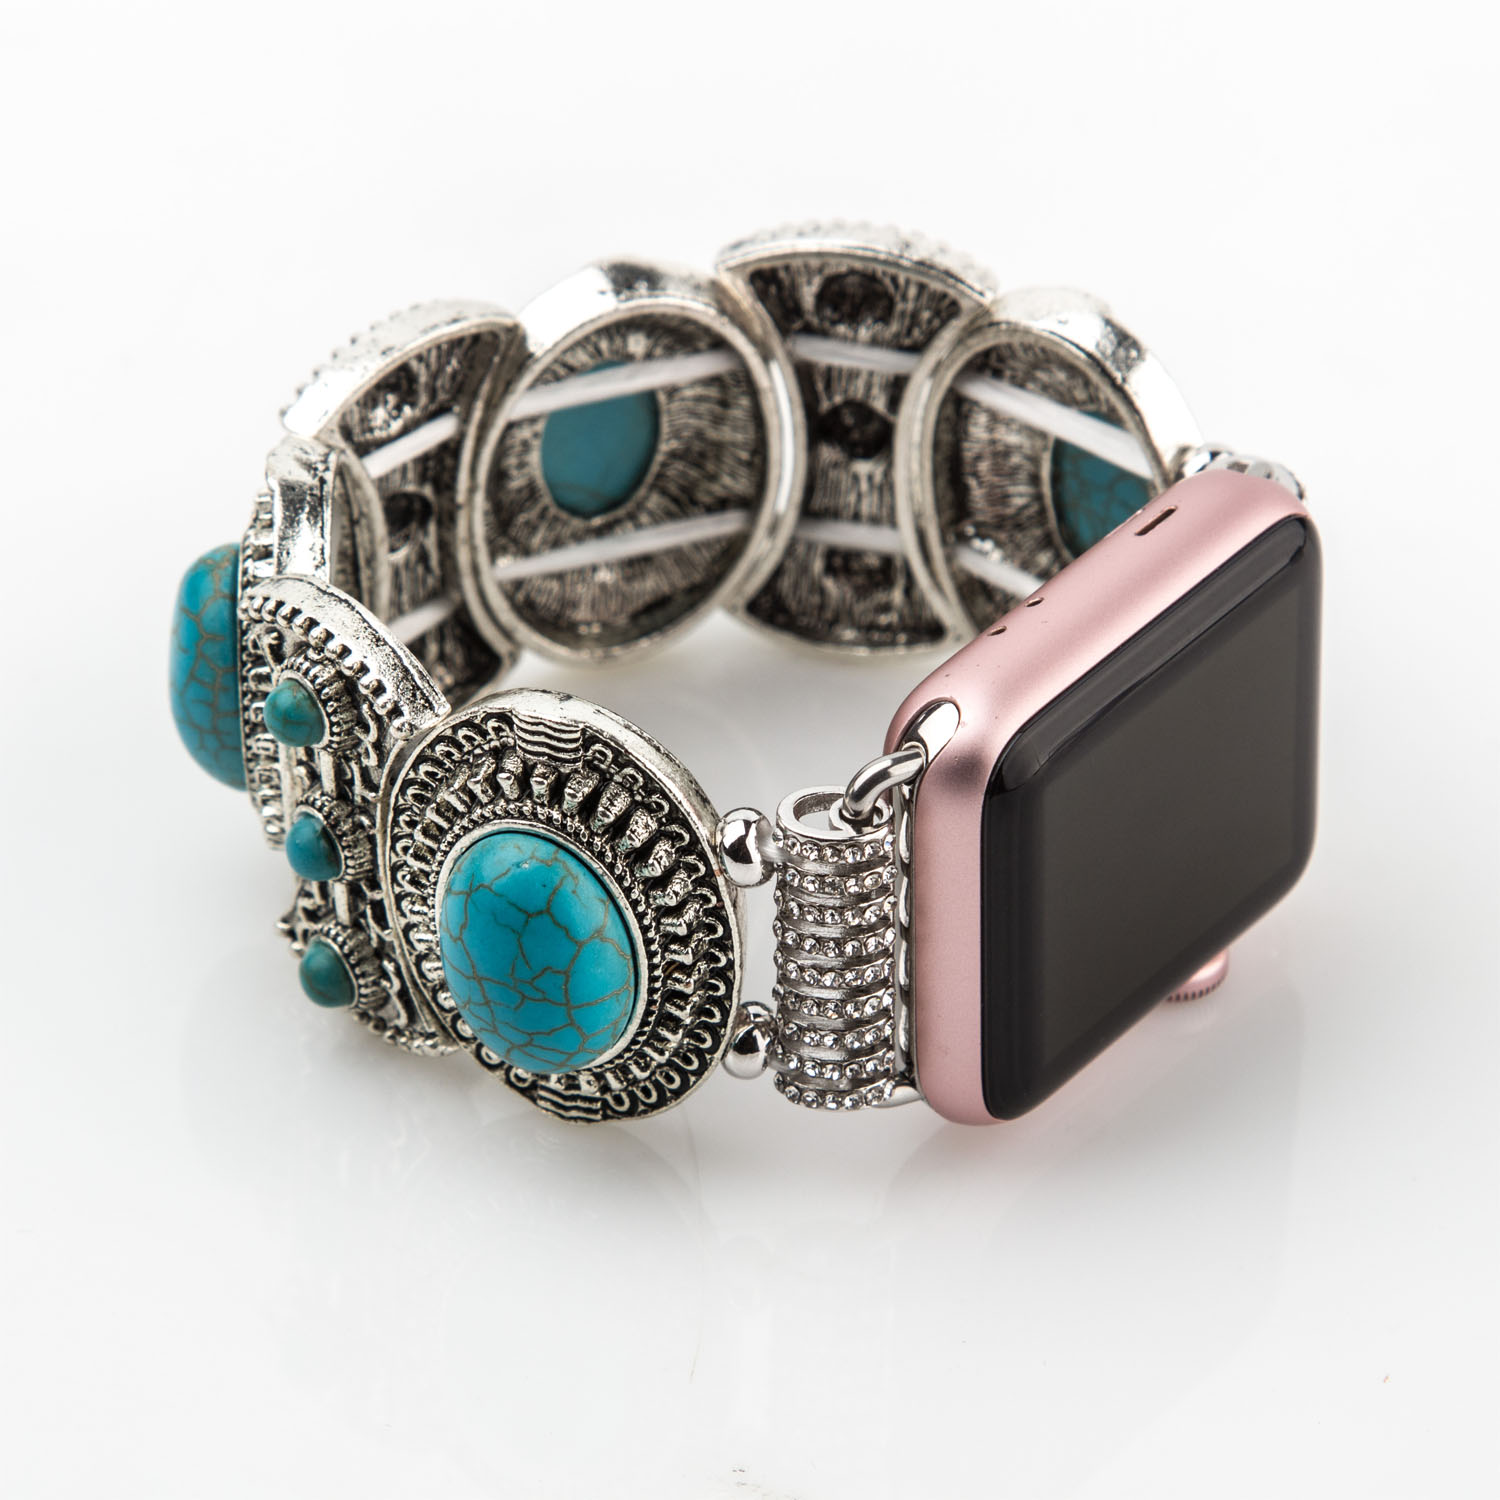 bracelet apple serie 3 retro turquoise stretch bracelet for apple series 3 4968